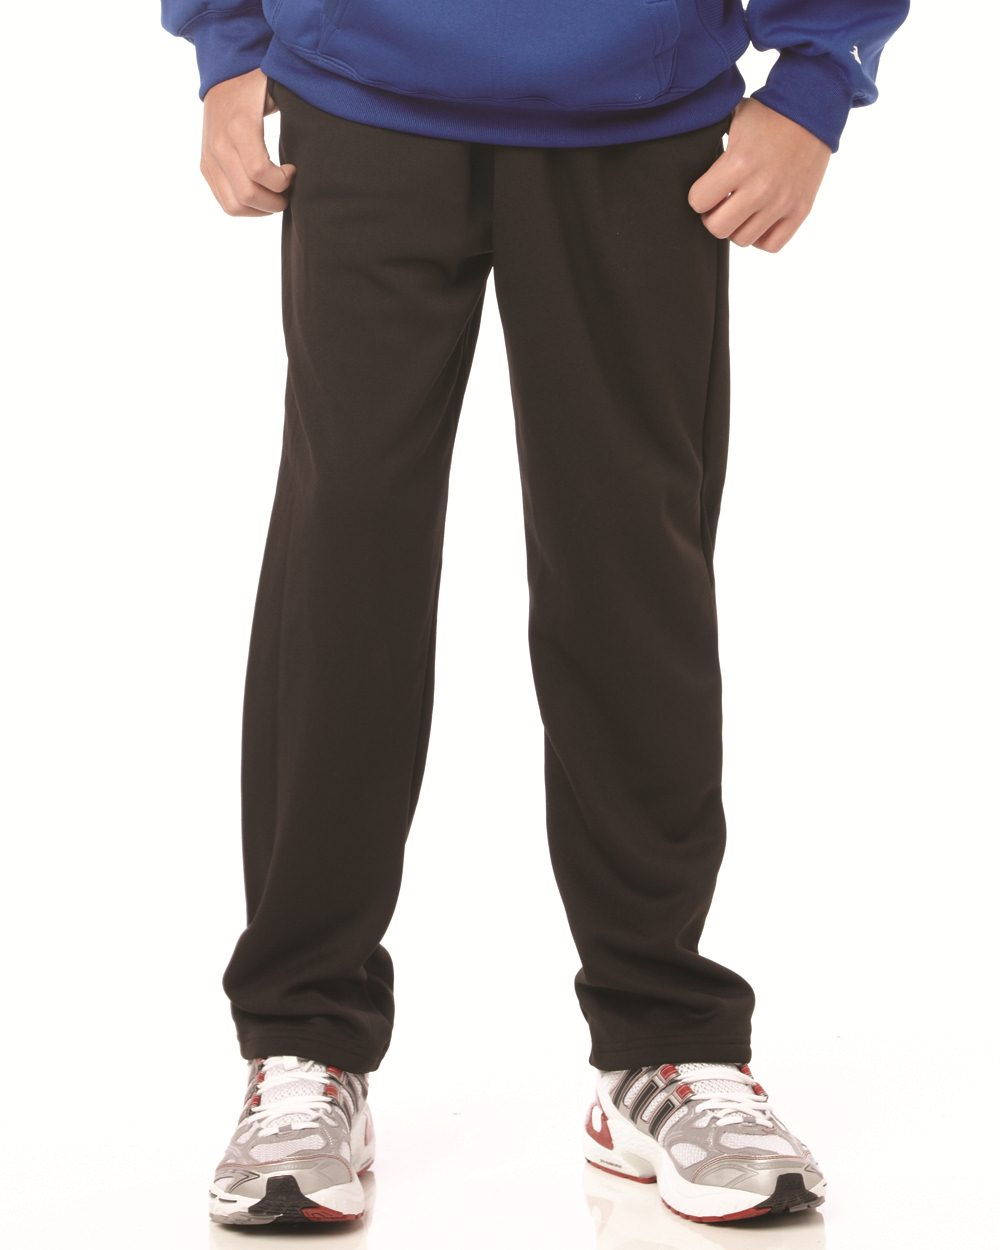 Badger 2478 - BT5 Youth Fleece Sweatpant